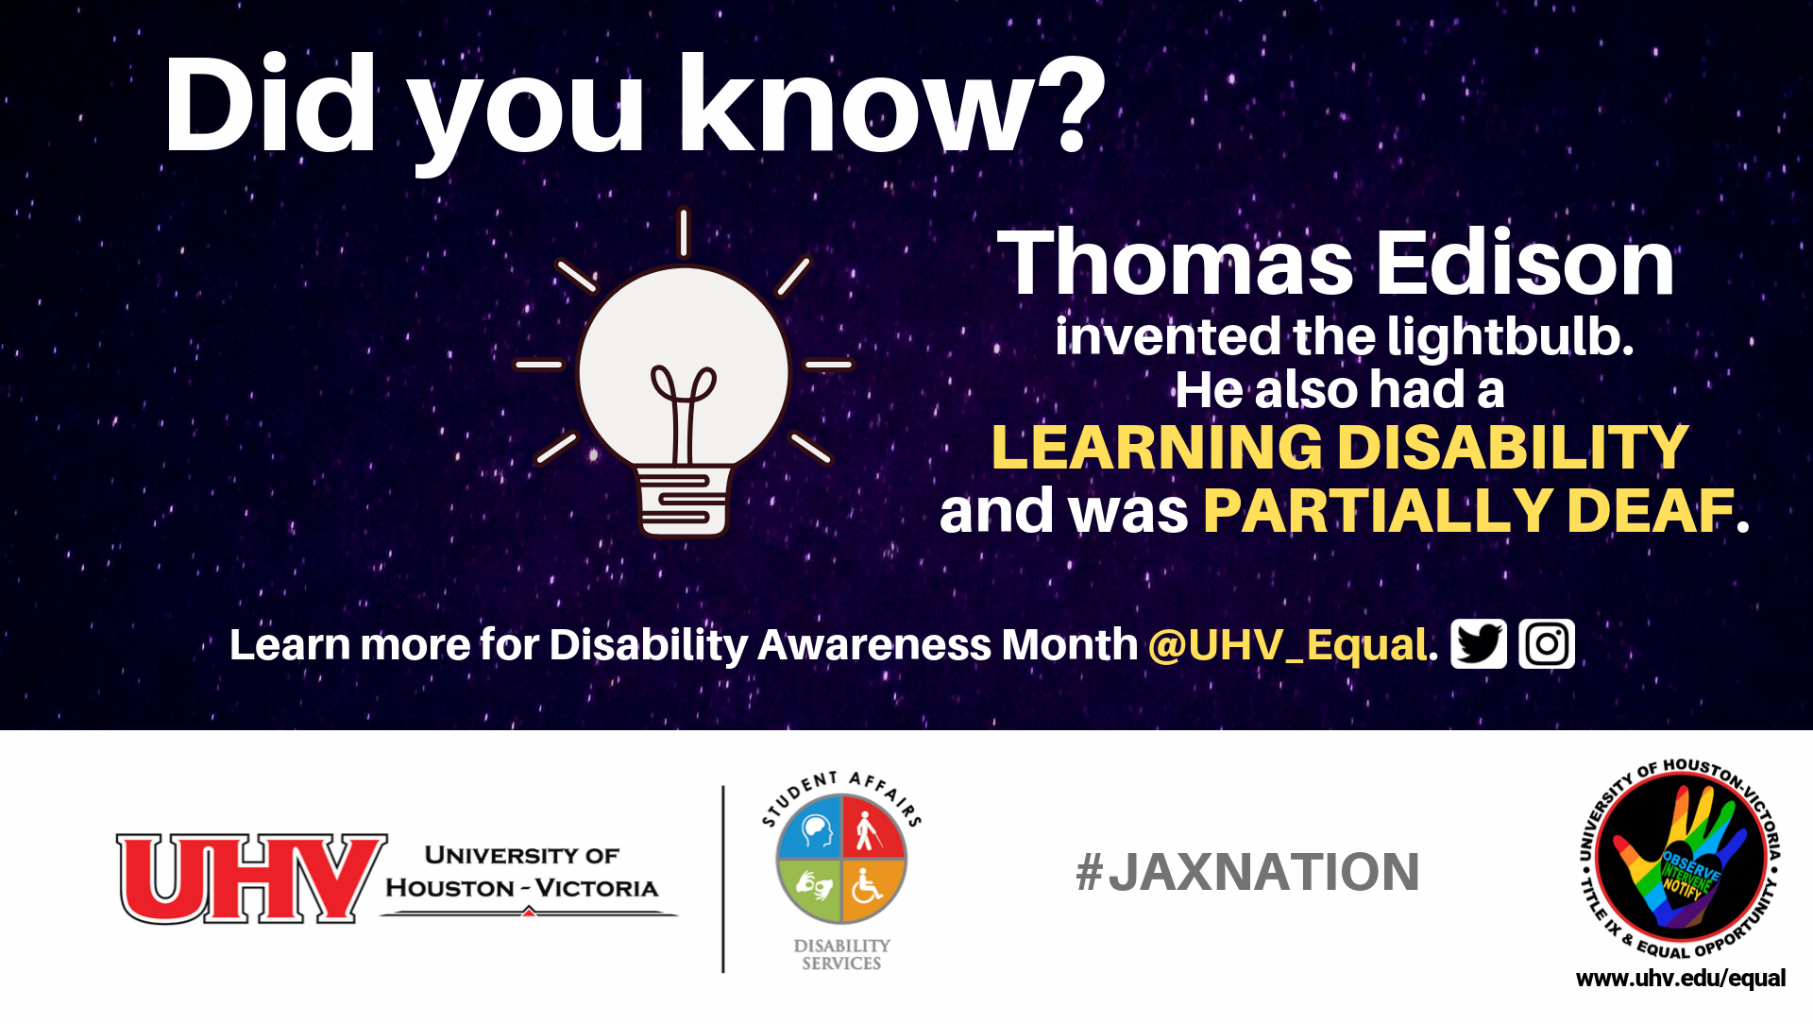 Did you know? Thomas Edison invented the lightbulb. He also had a learning disability and was partially deaf. UHV Disability Services Logo. October is Disability Awareness Month. #jaxnation.